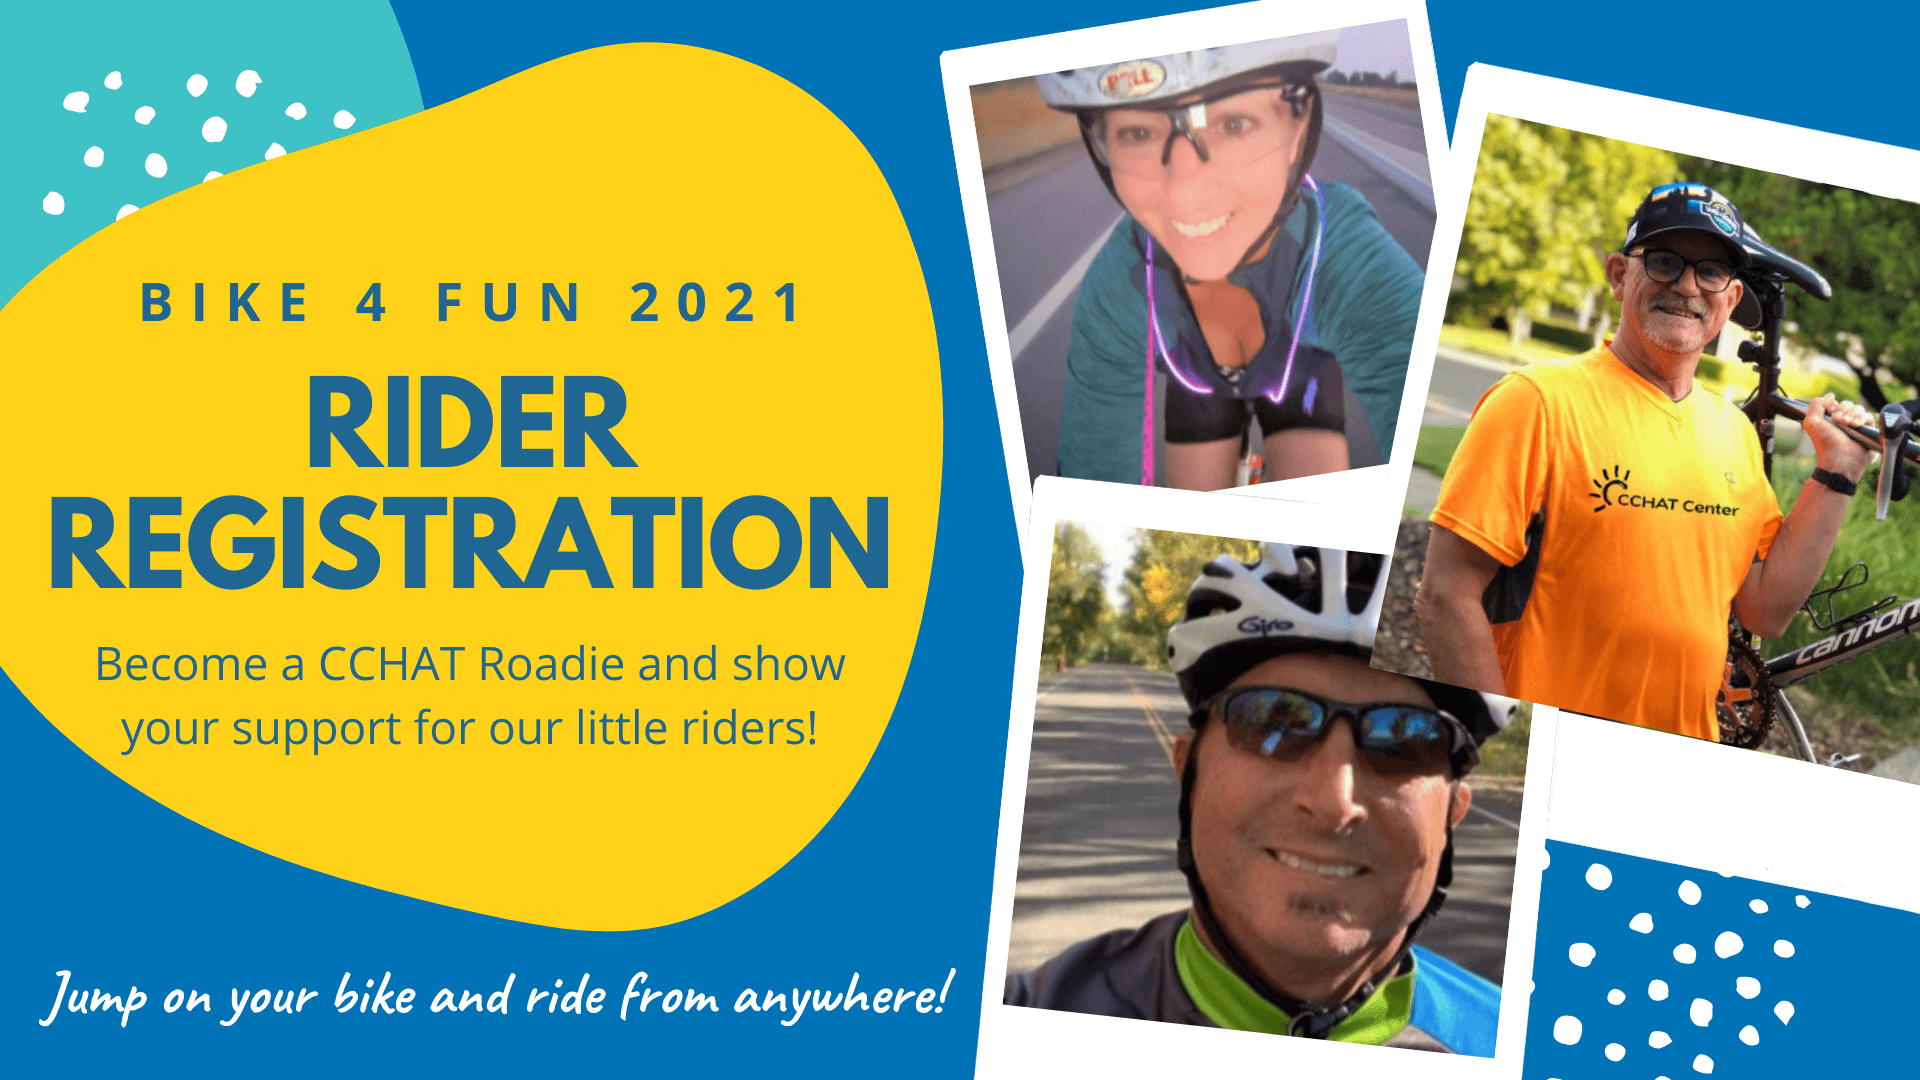 Become a CCHAT Roadie for Bike 4 Fun 2021!